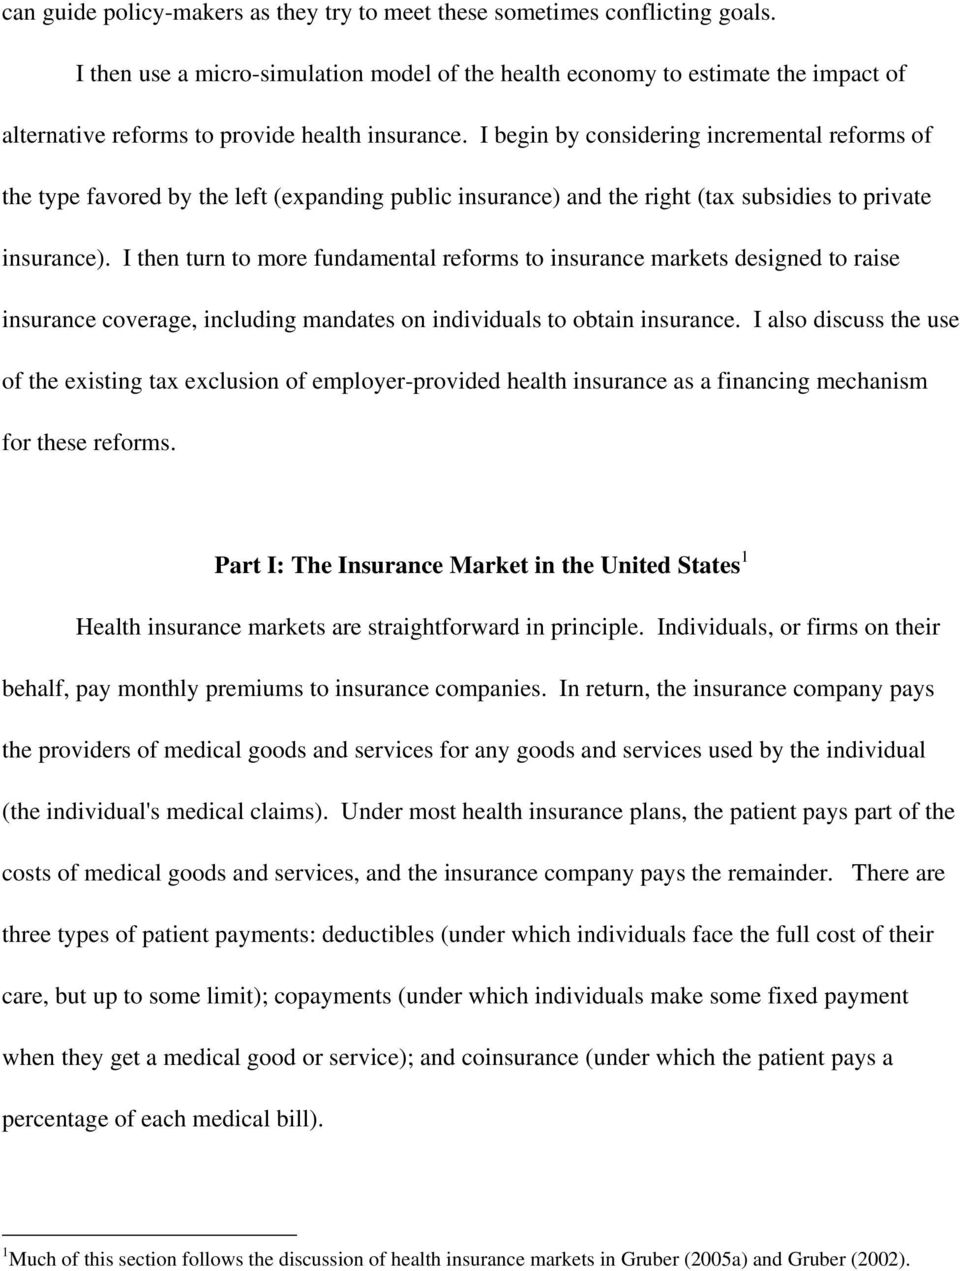 I begin by considering incremental reforms of the type favored by the left (expanding public insurance) and the right (tax subsidies to private insurance).